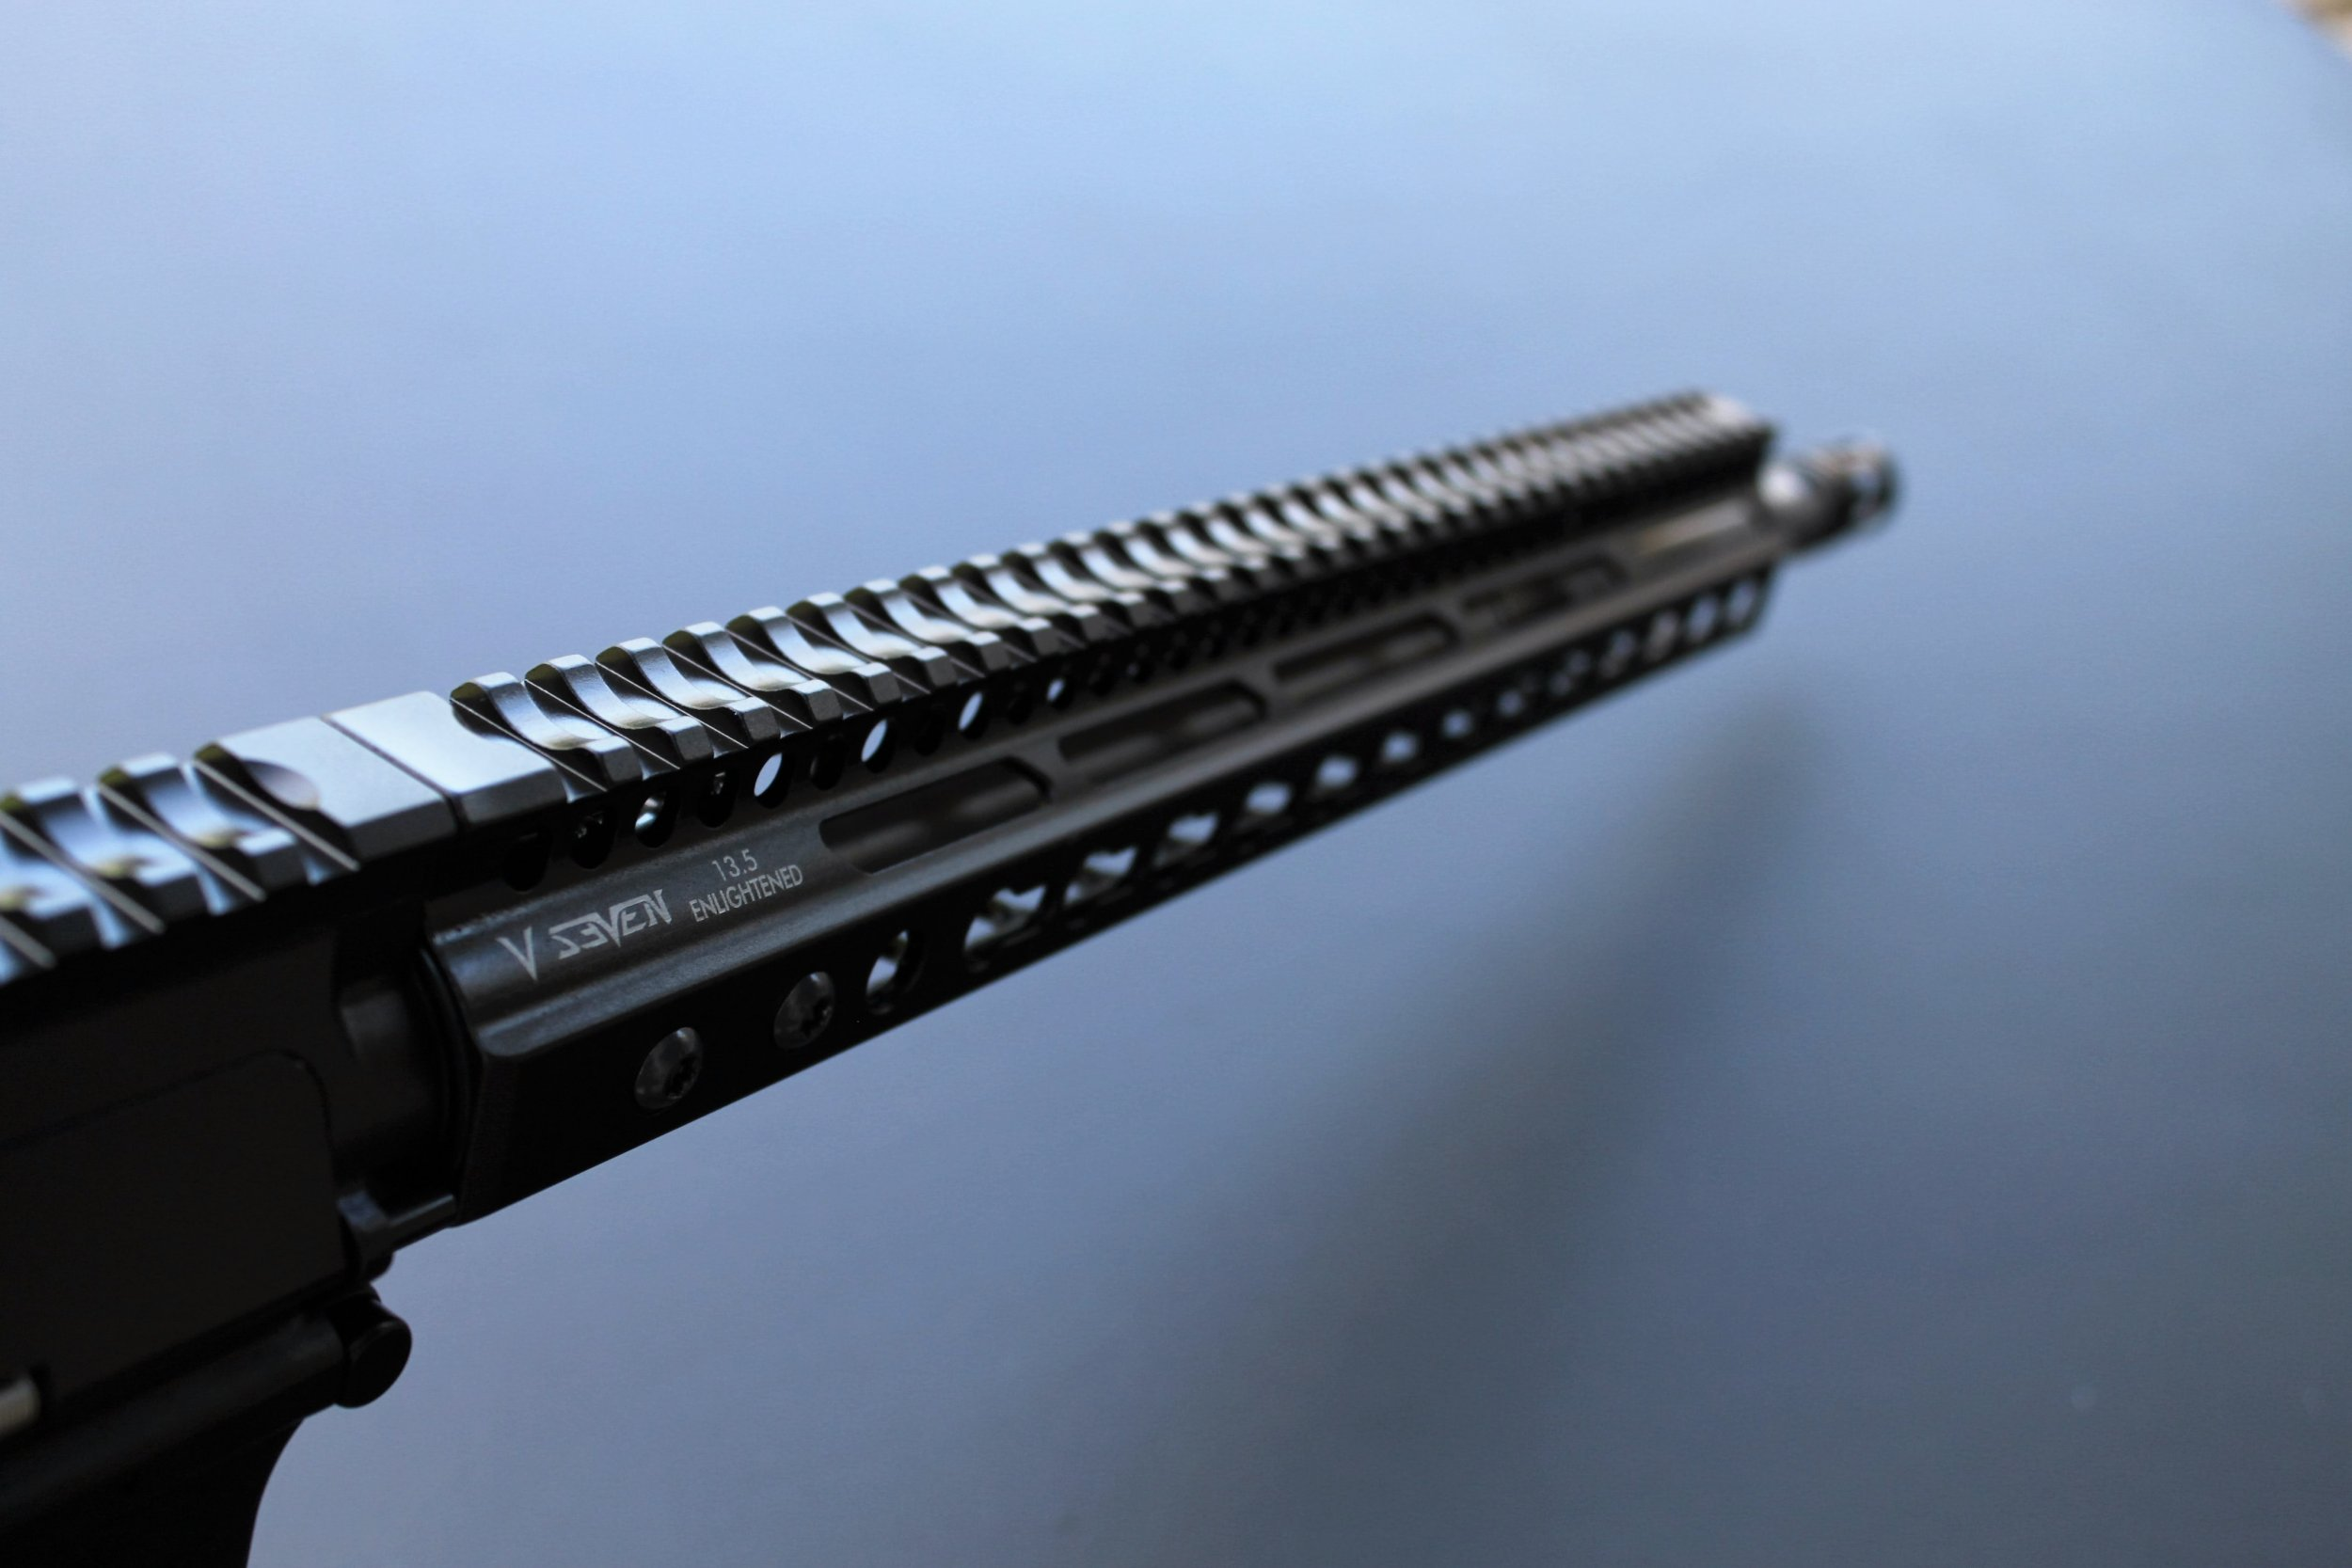 V Seven (V7) Weapon Systems Enlightened Tactical Handguard/Rail